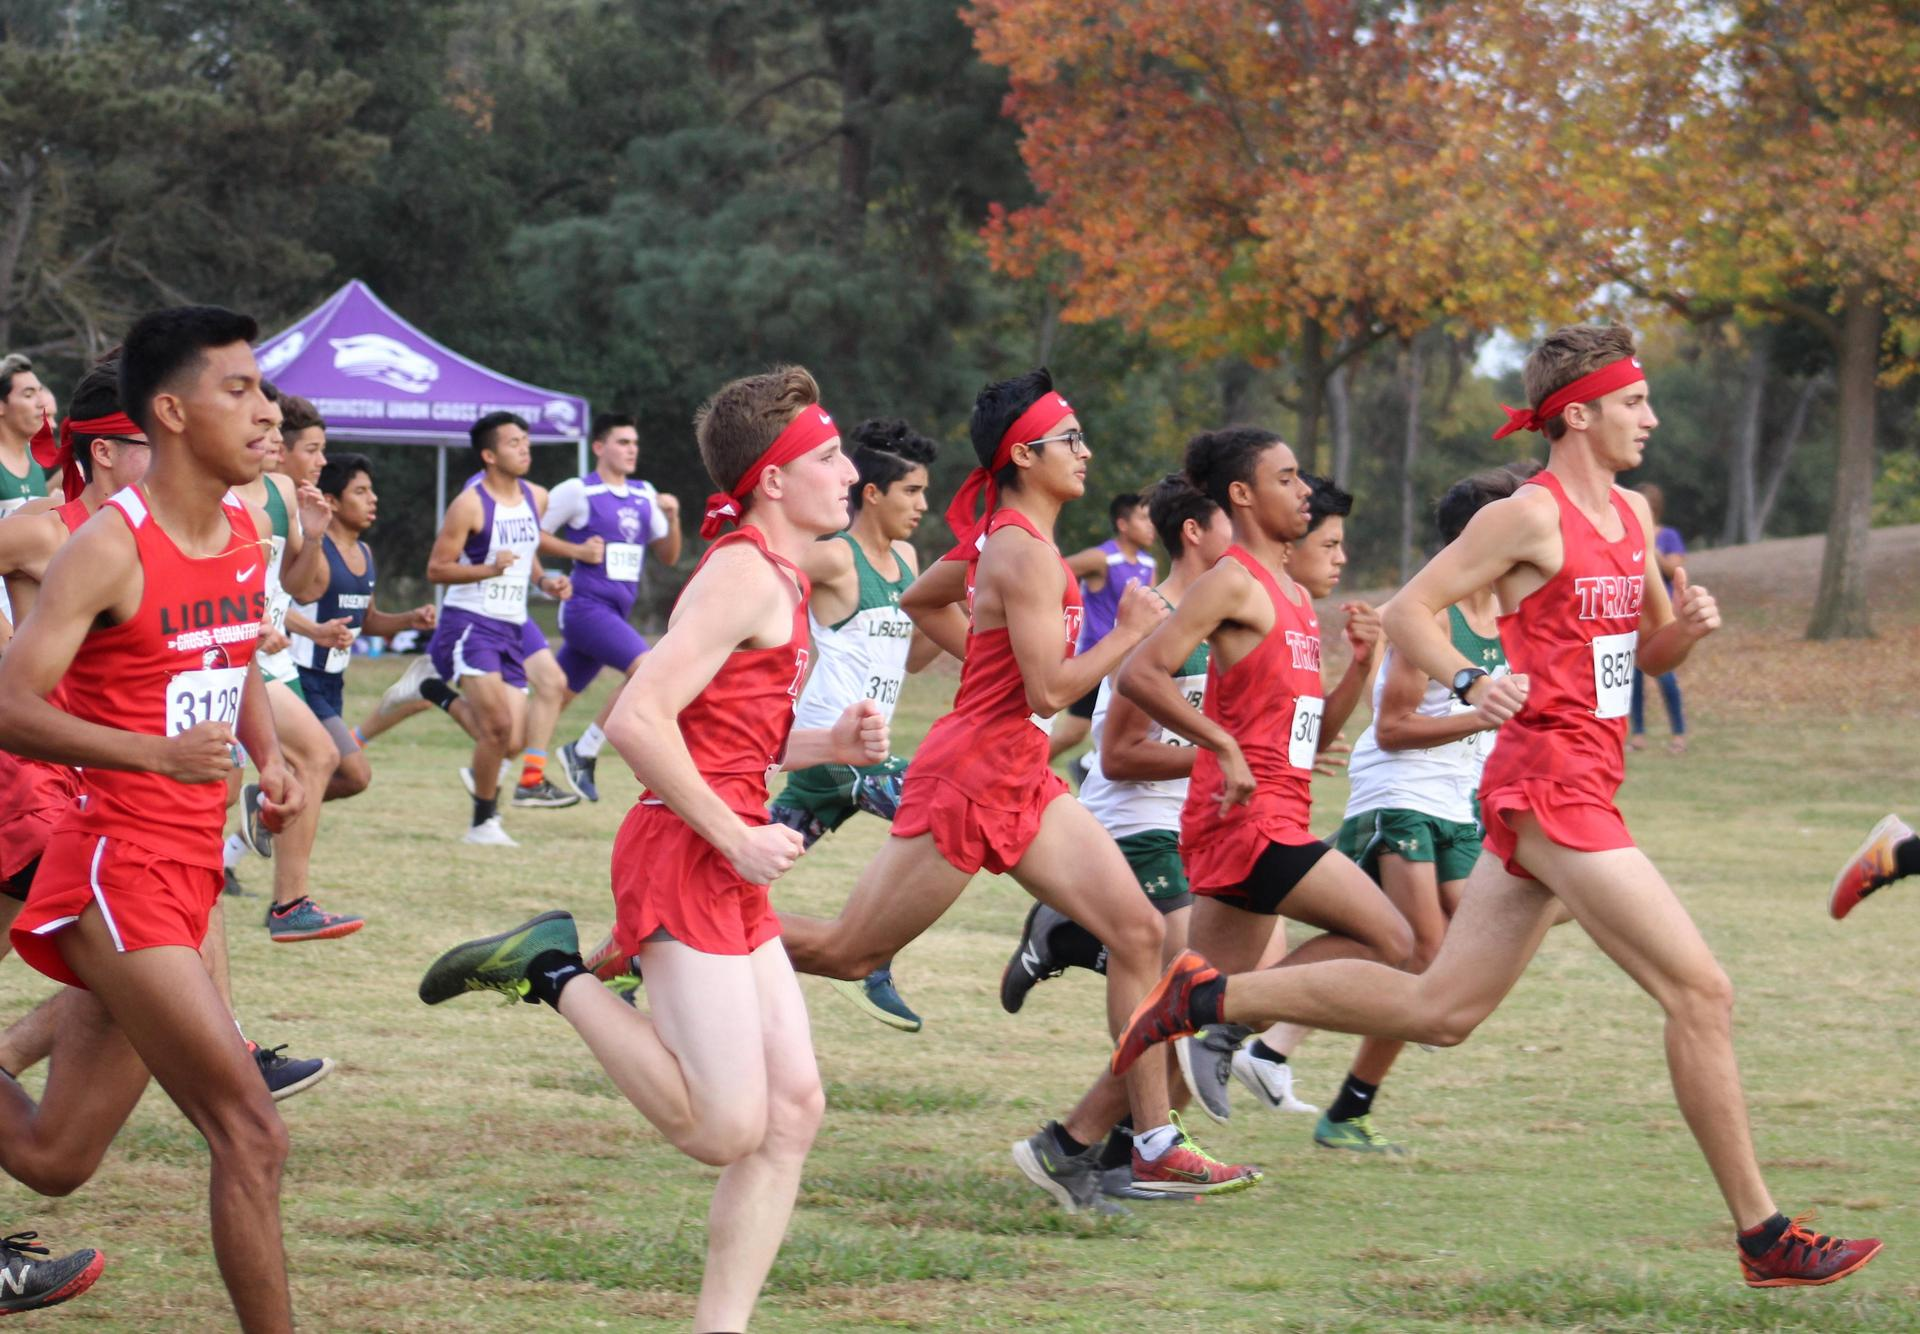 Cross Country team starting race at Woodward Park